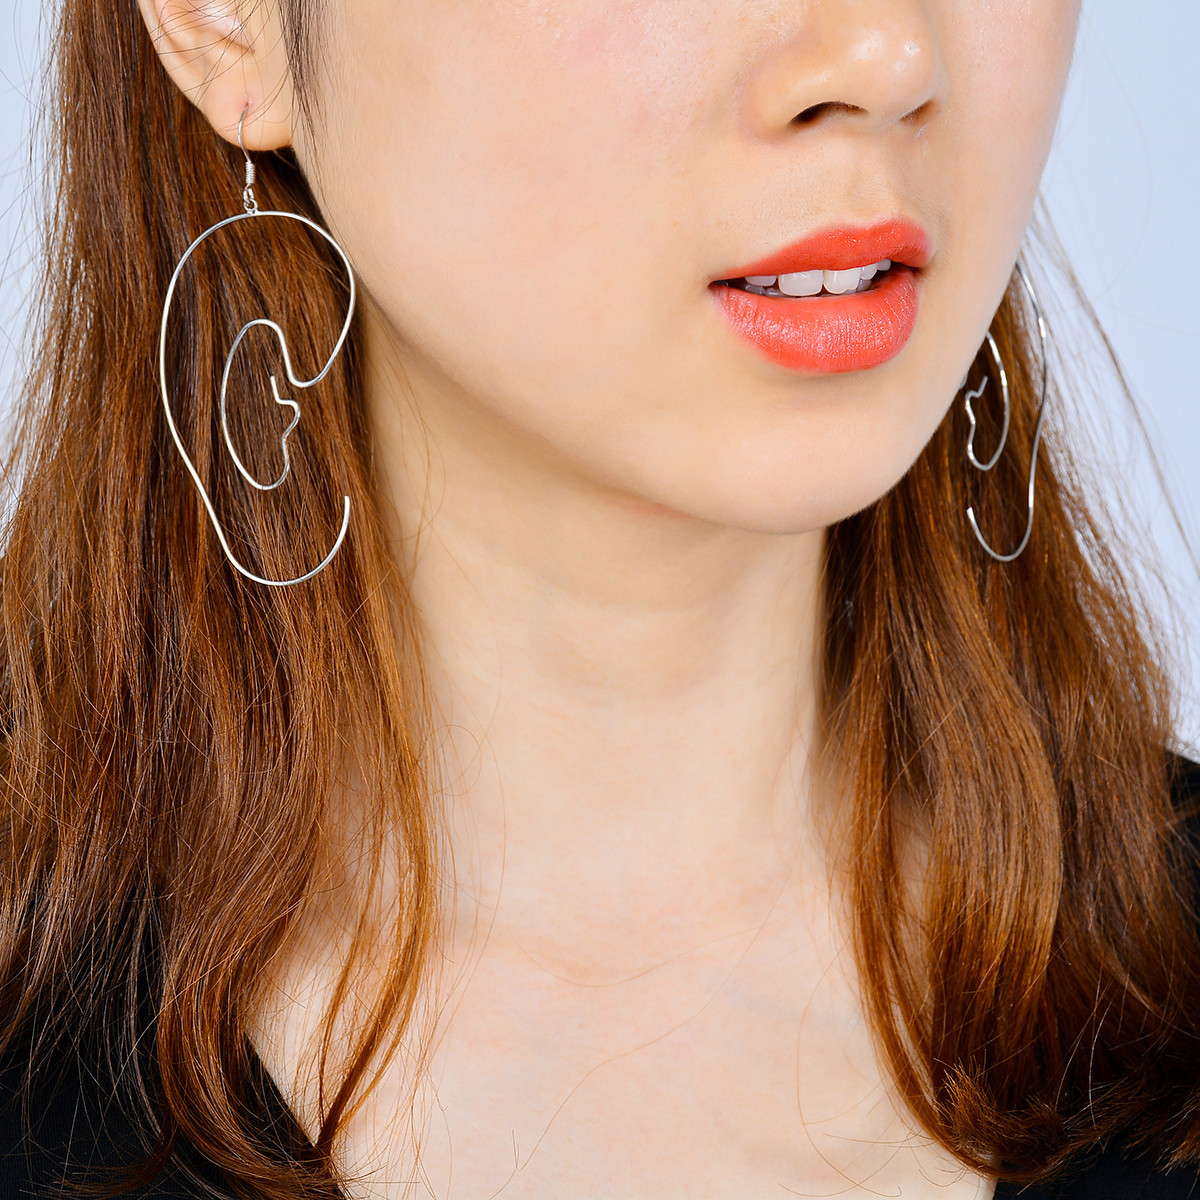 Occident and the United States alloy plating earring (B0353 gold)NHXR1446-B0353 gold